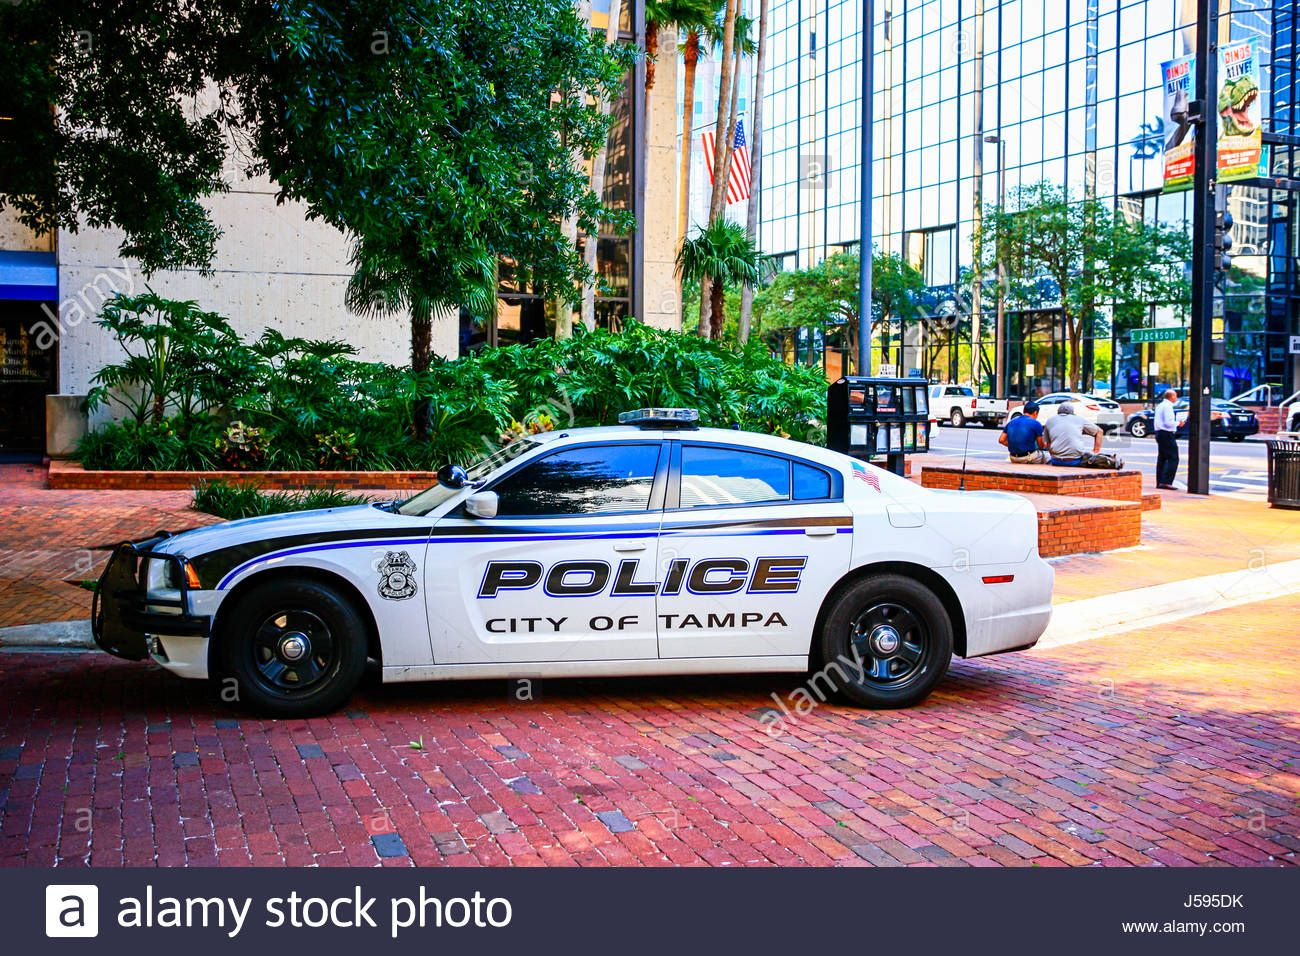 Pin By Ncffep 911 On Tampa Polices Police Cars Emergency Vehicles Police